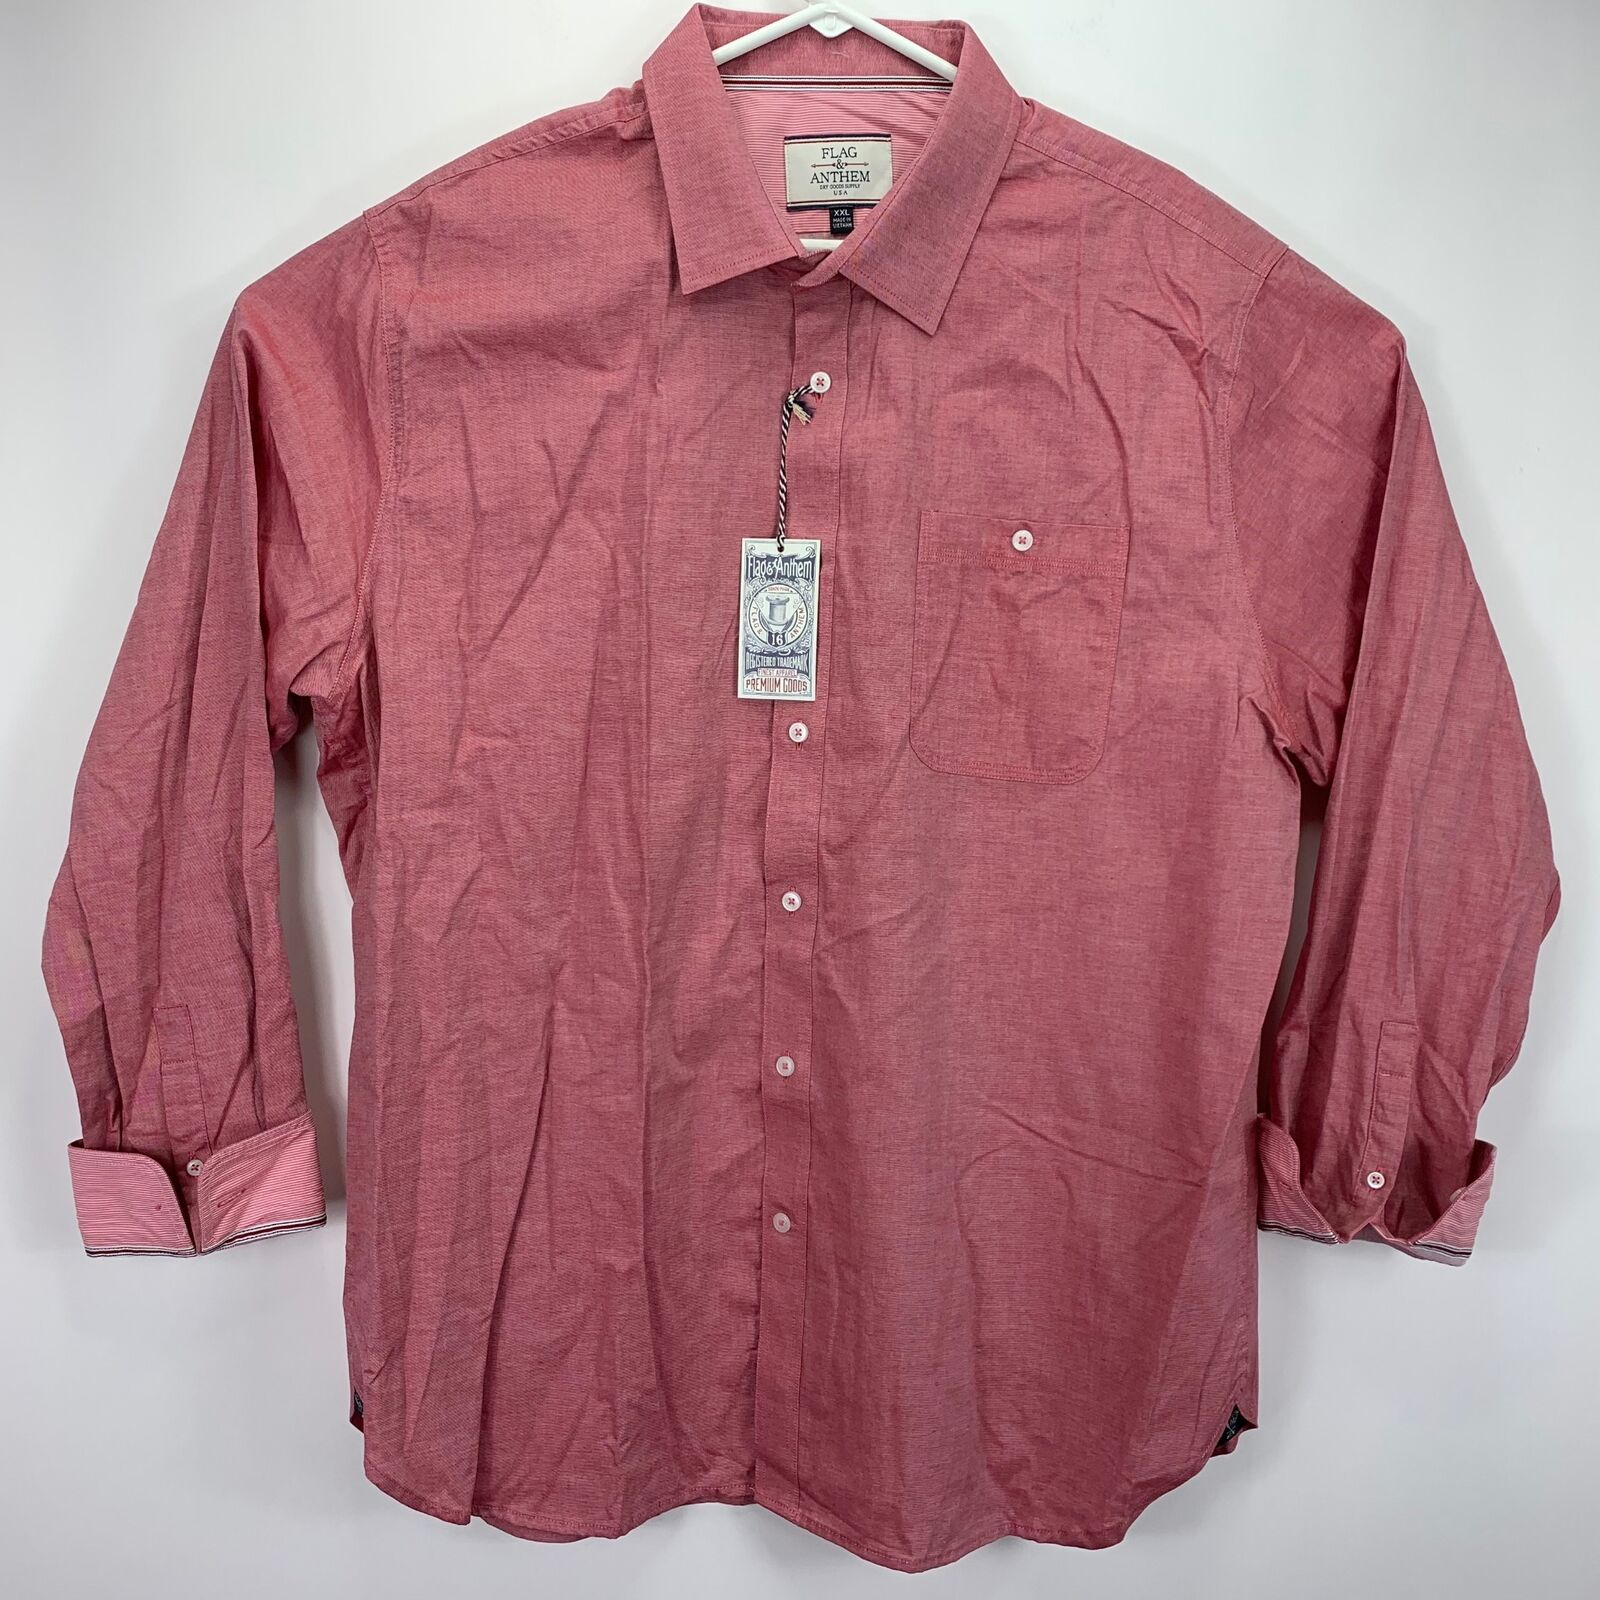 Flag & Anthem Mens Solid Long Sleeve Button Down Shirt Pink Red 2XL